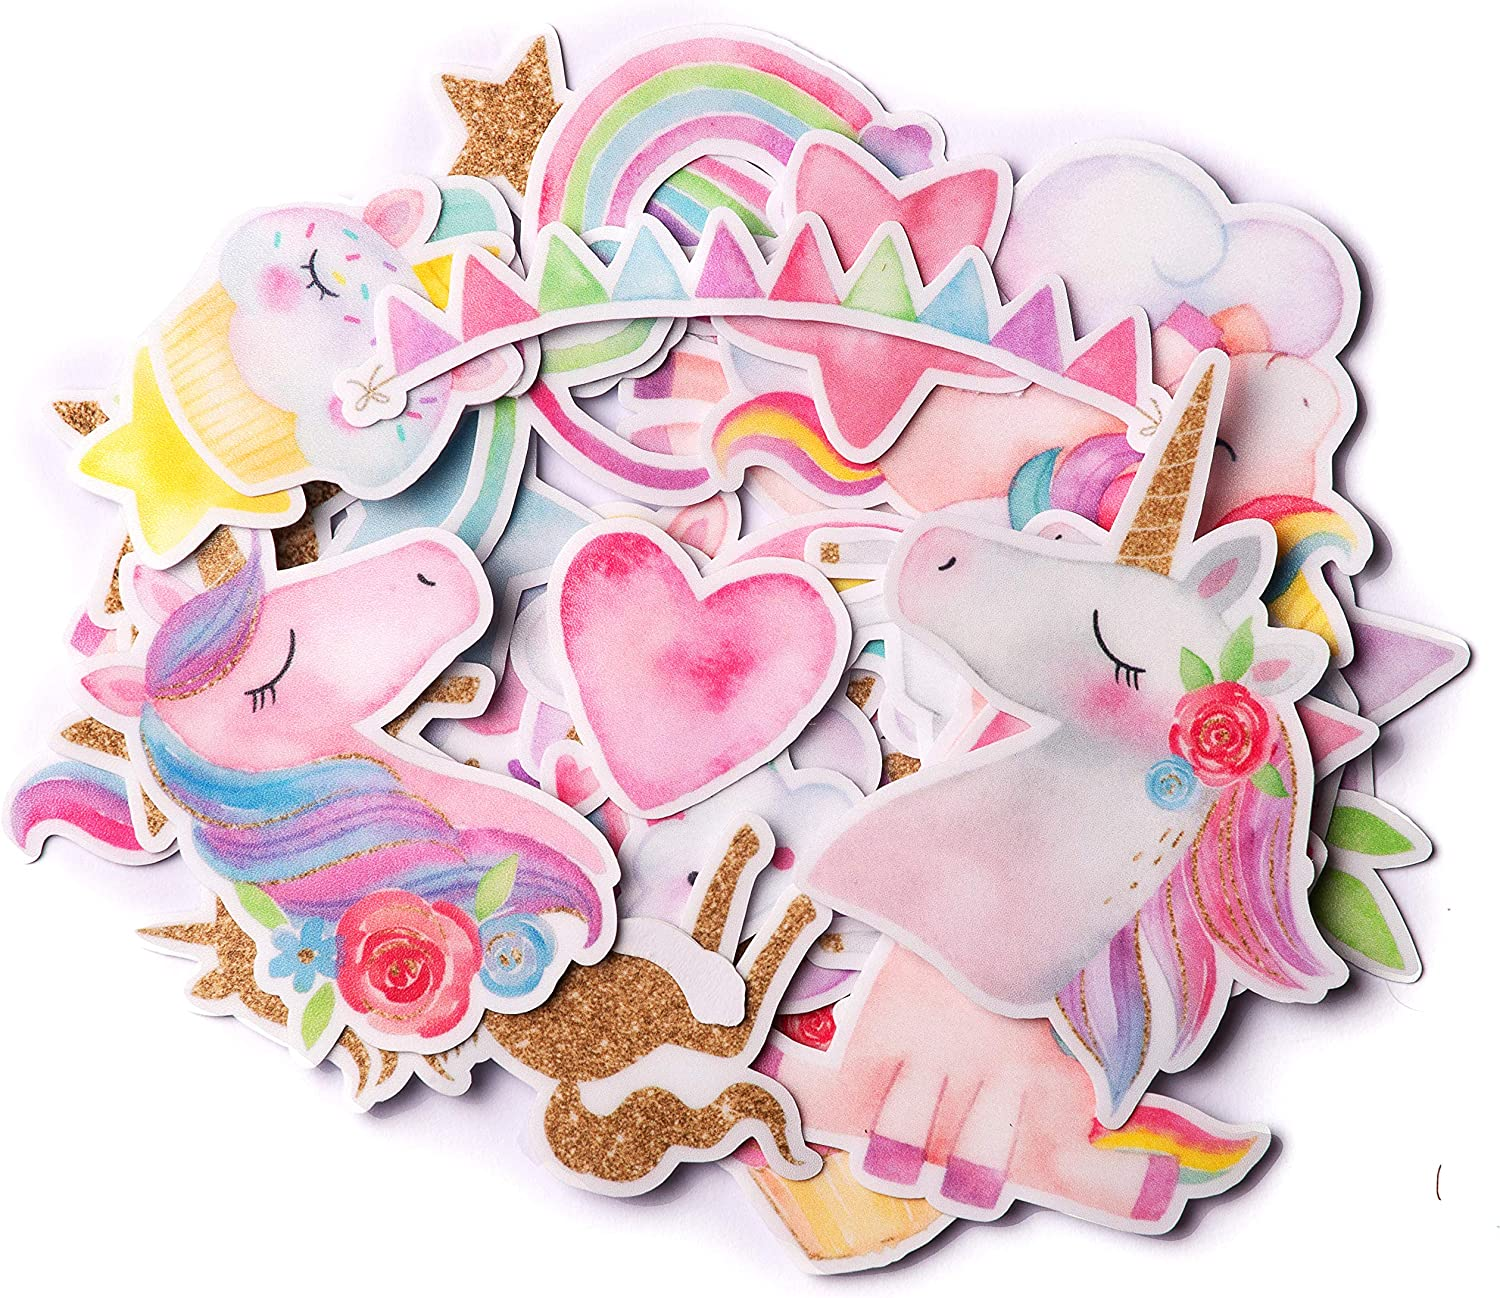 Navy Peony Magical Rainbow Unicorn Stickers (34 Pieces) | Cute Sticker Pack for Party Favors and Scrapbooking | Waterproof Princess Stickers for Girls